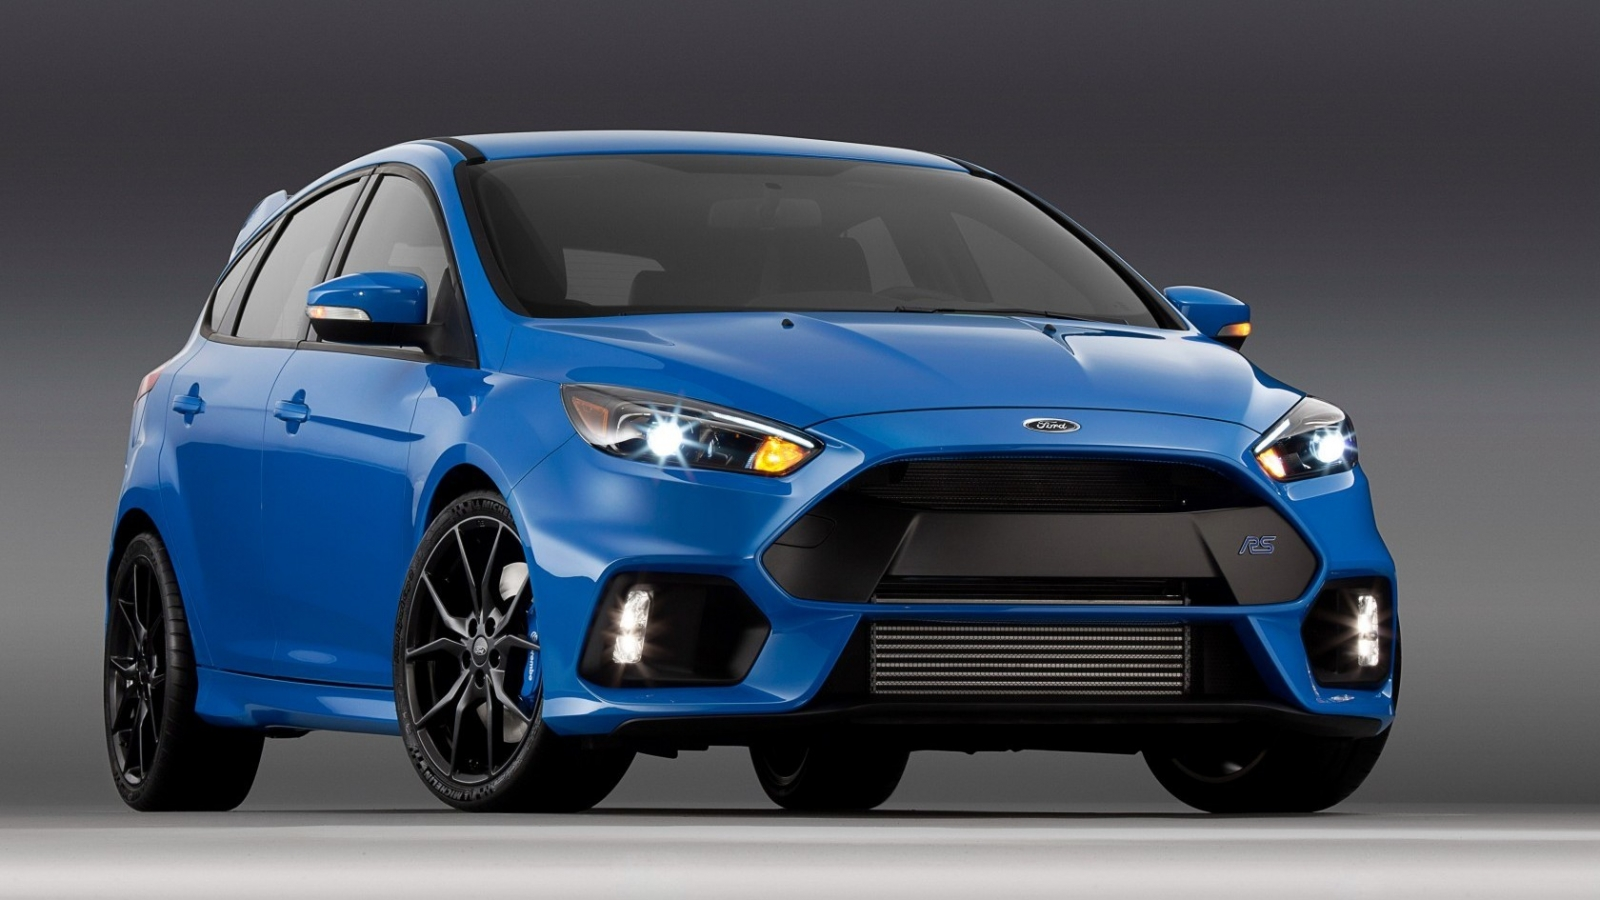 Blue Ford Focus Rs Hd Wallpaper Wallpaperfx